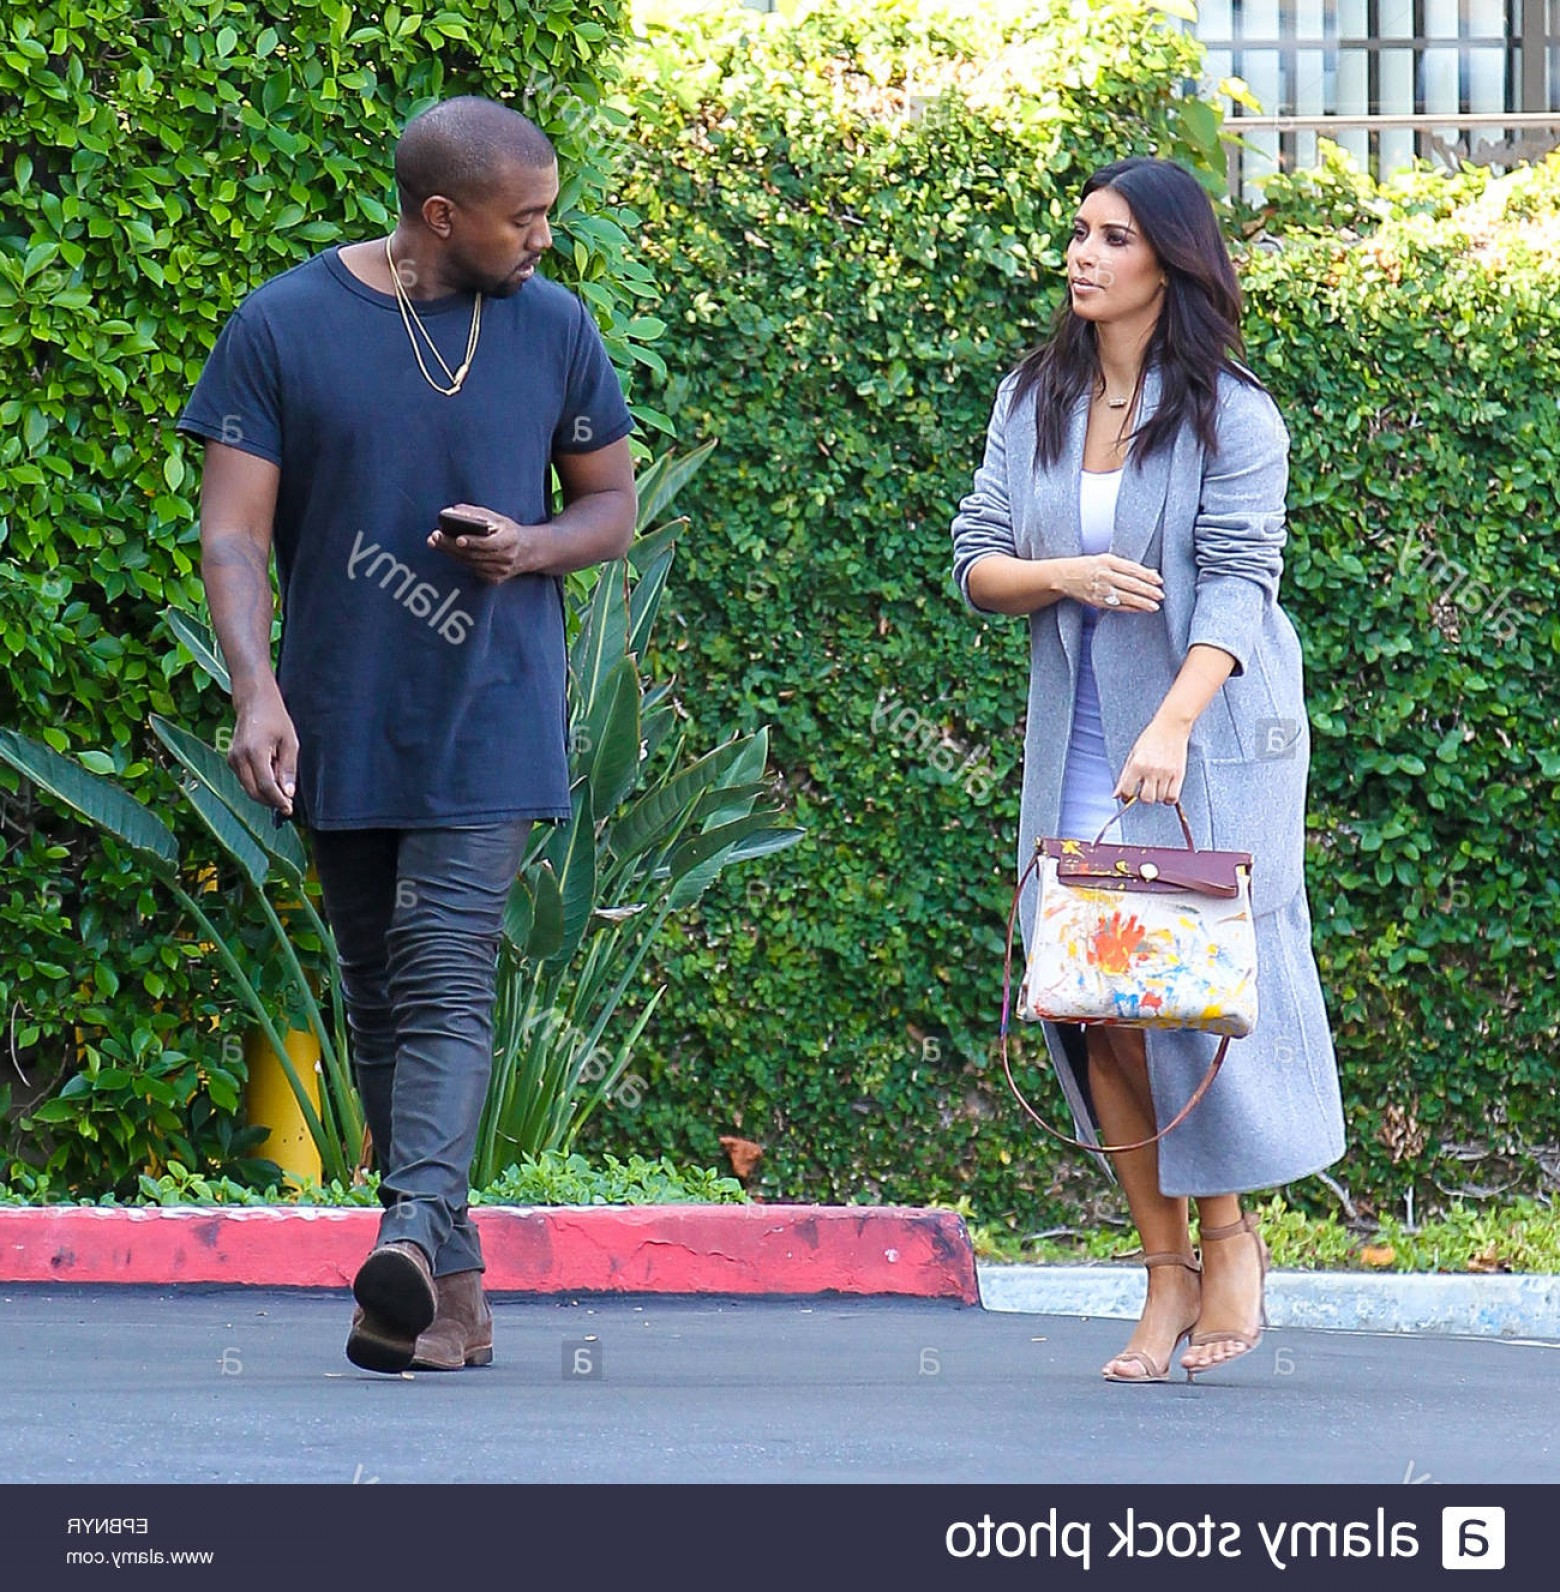 Kanye West Vector Paintig: Stock Photo Kanye West And Kim Kardashian Whos Holding An Original Hermes Bag